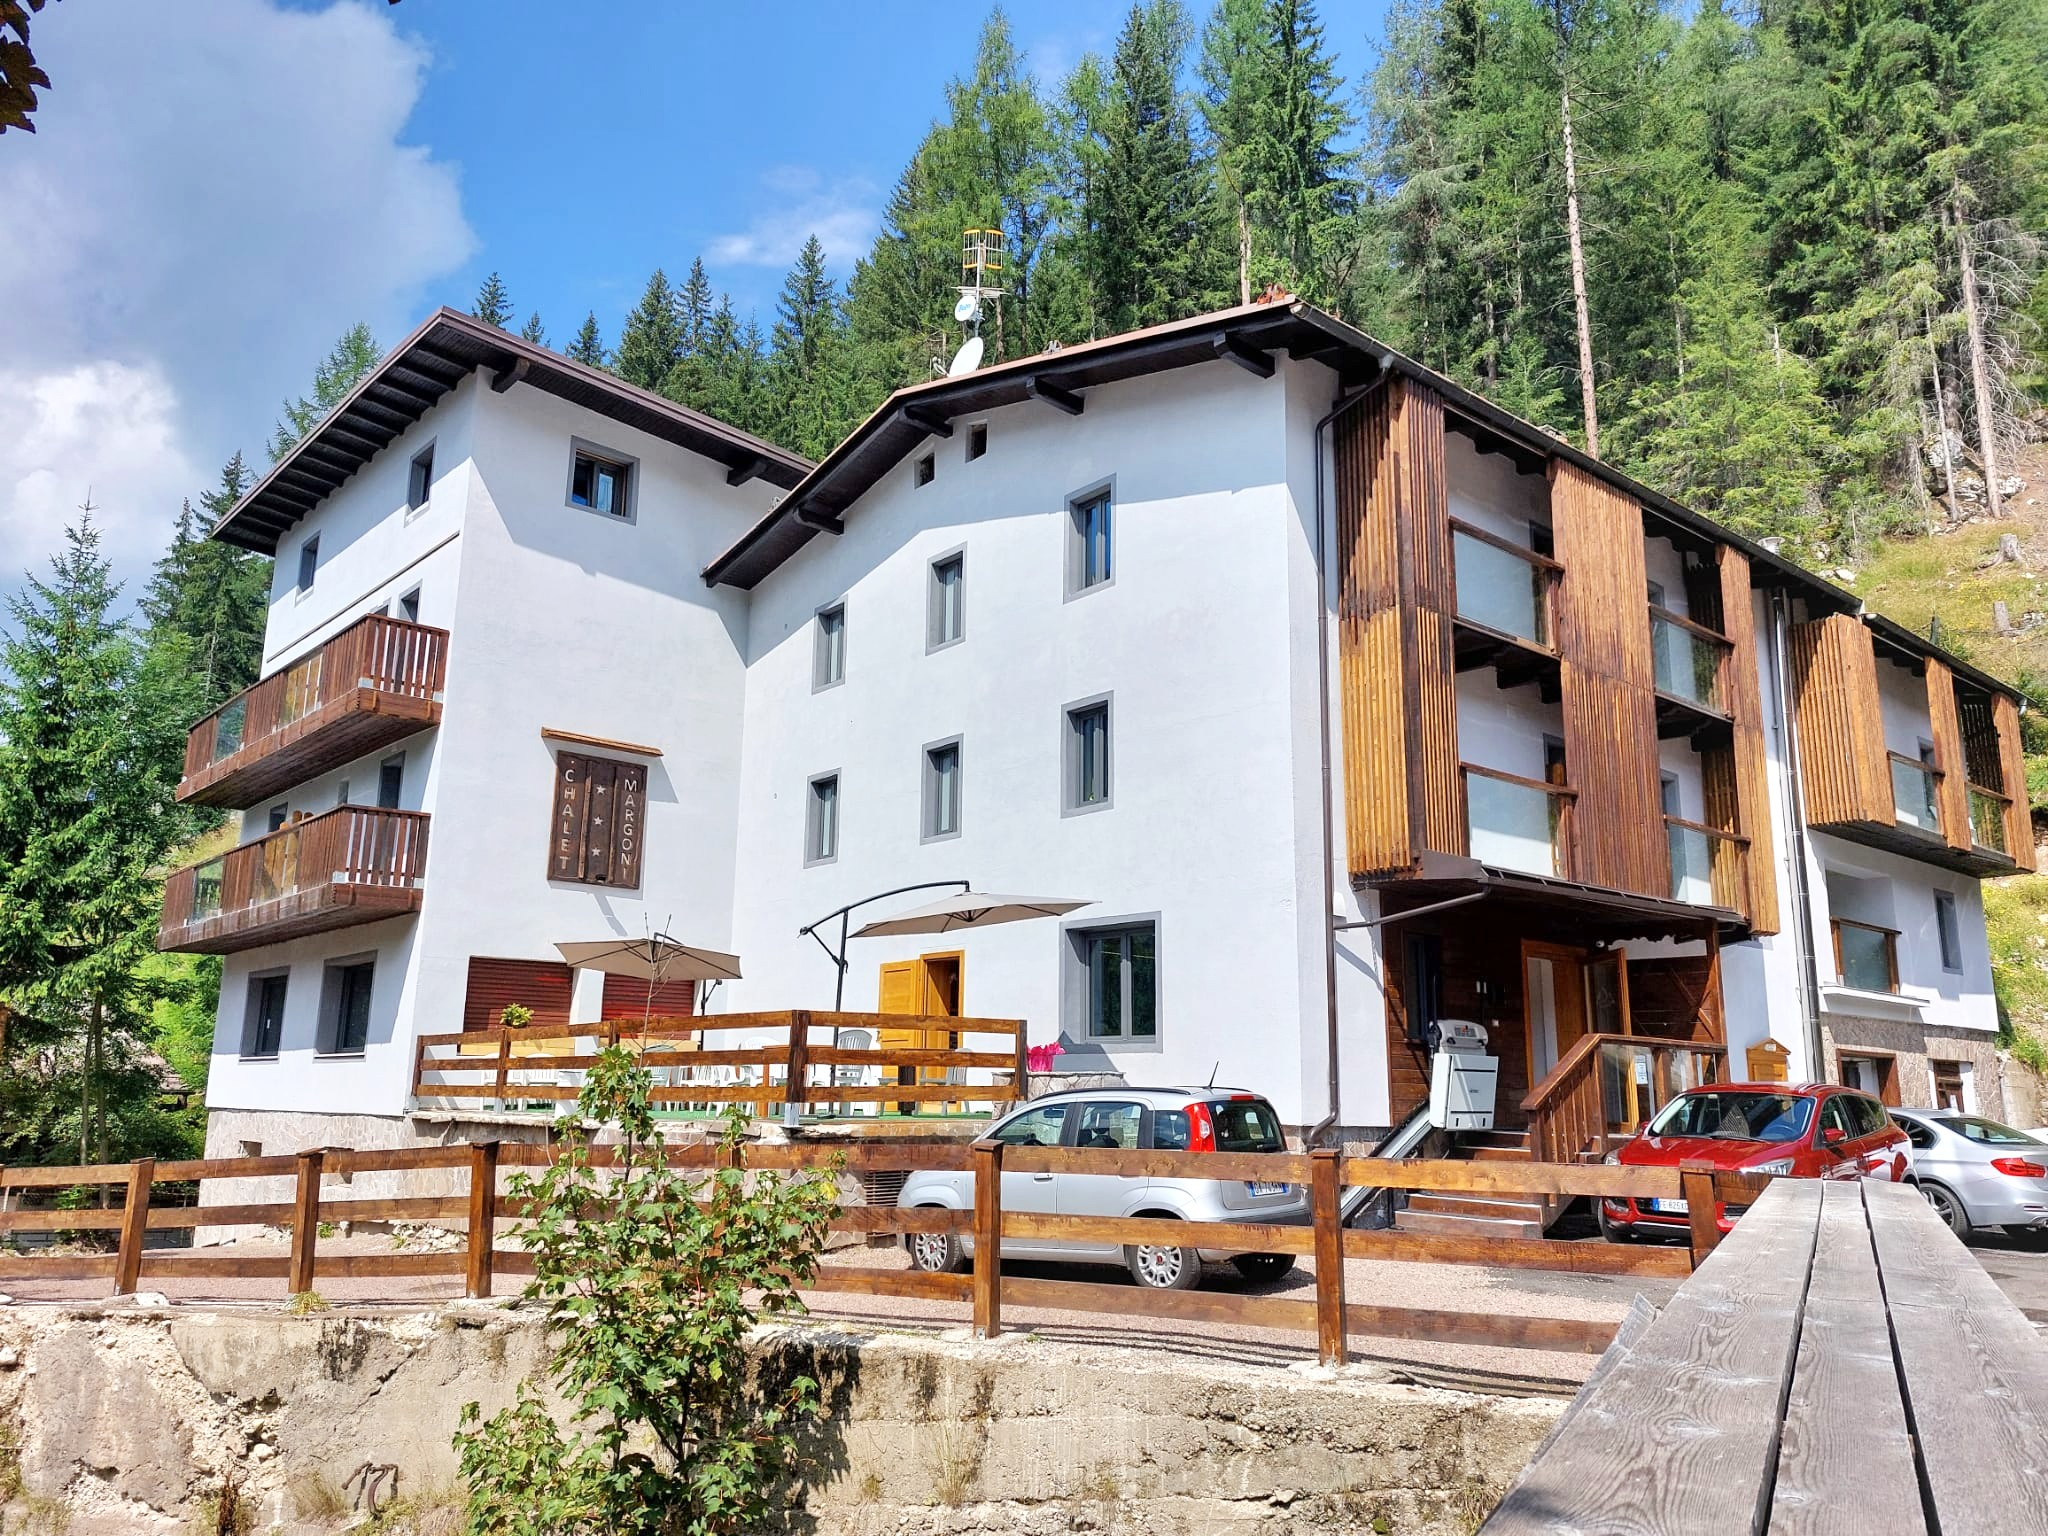 Anthracite-colored windows for Chalet Margoni in Canazei